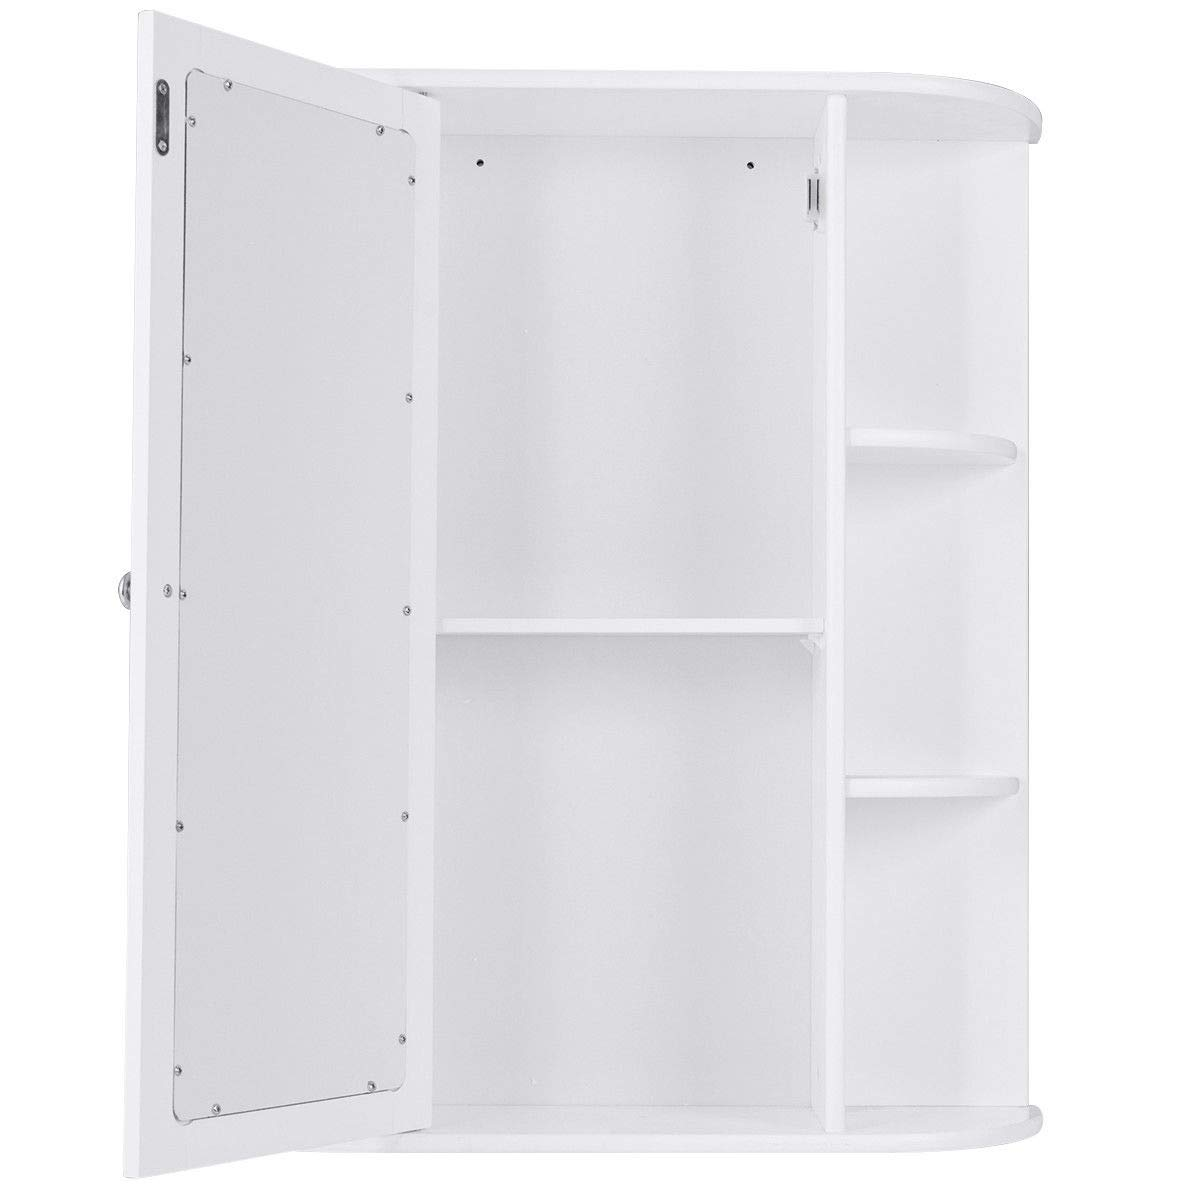 TANGKULA Bathroom Cabinet Single Door Wall Mount with Mirror Organizer Storage Cabinet(2 Tier Inner Shelves) by TANGKULA (Image #8)